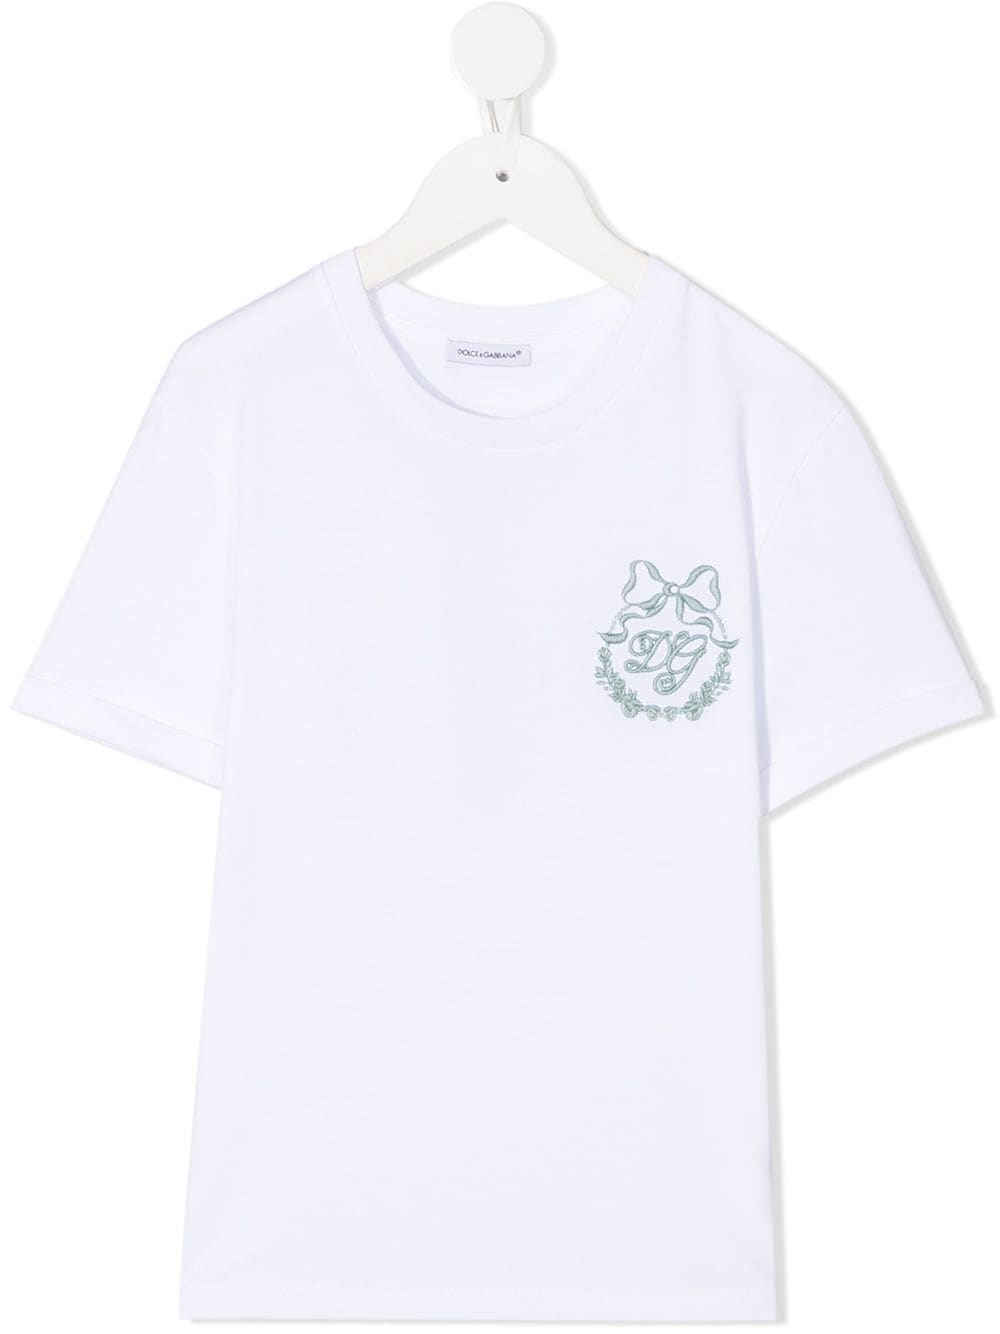 DOLCE & GABBANA KIDS Logo Embroidered T-shirt White